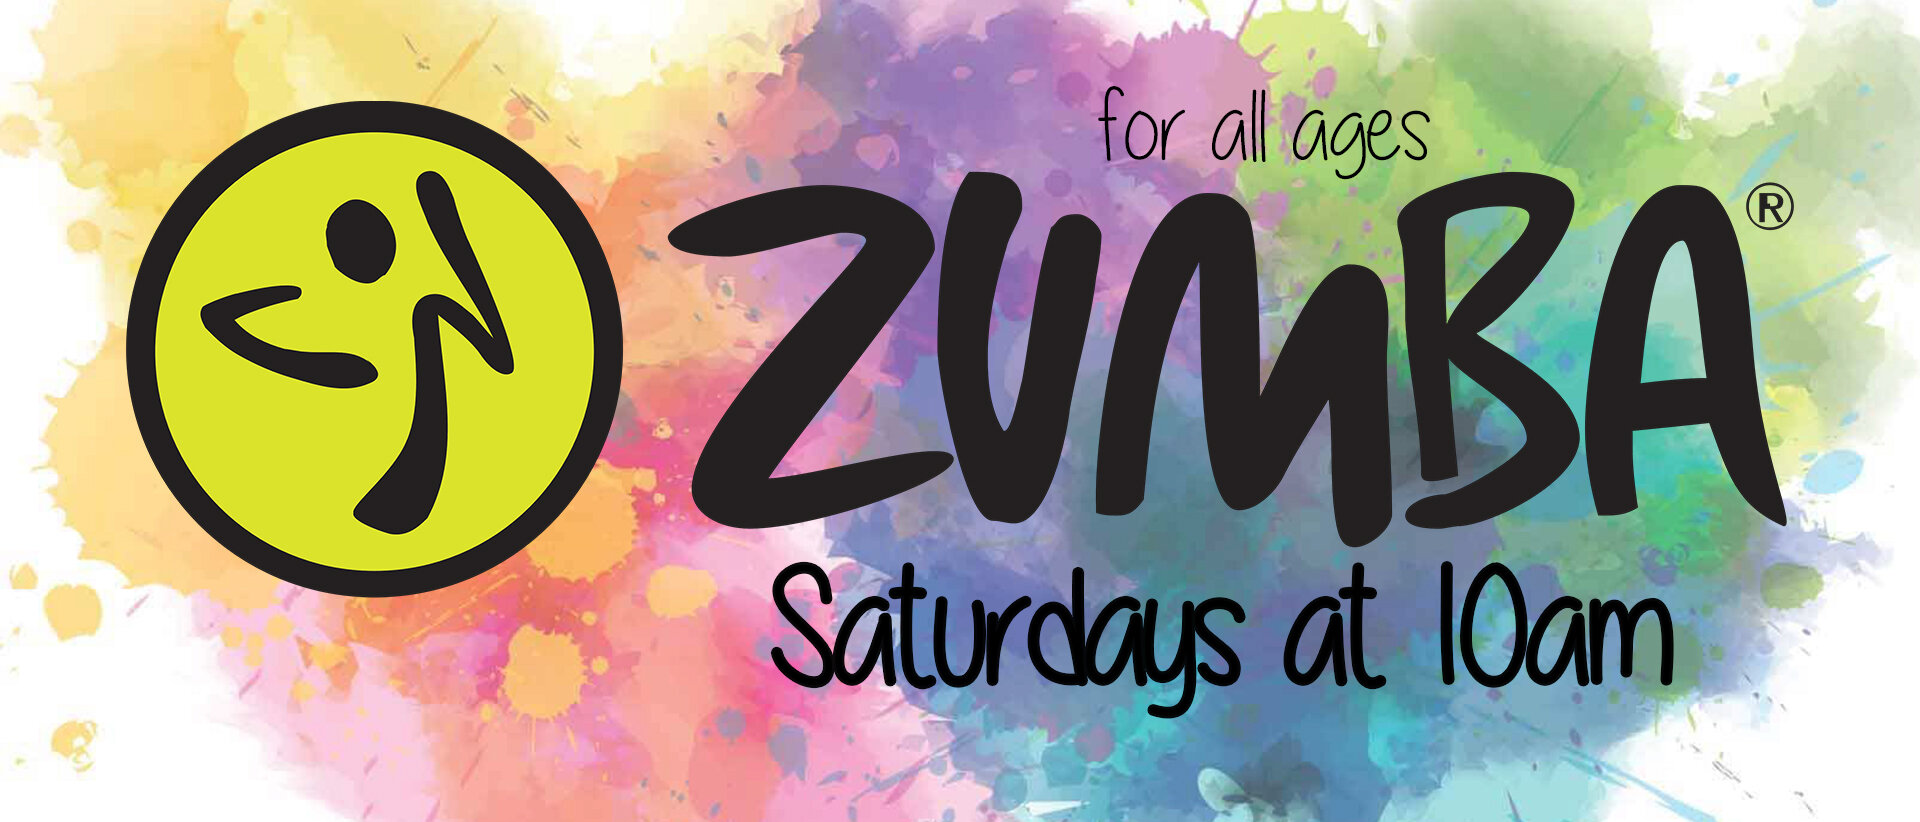 Zumba website condensed banner Saturdays NO CLICK.jpg